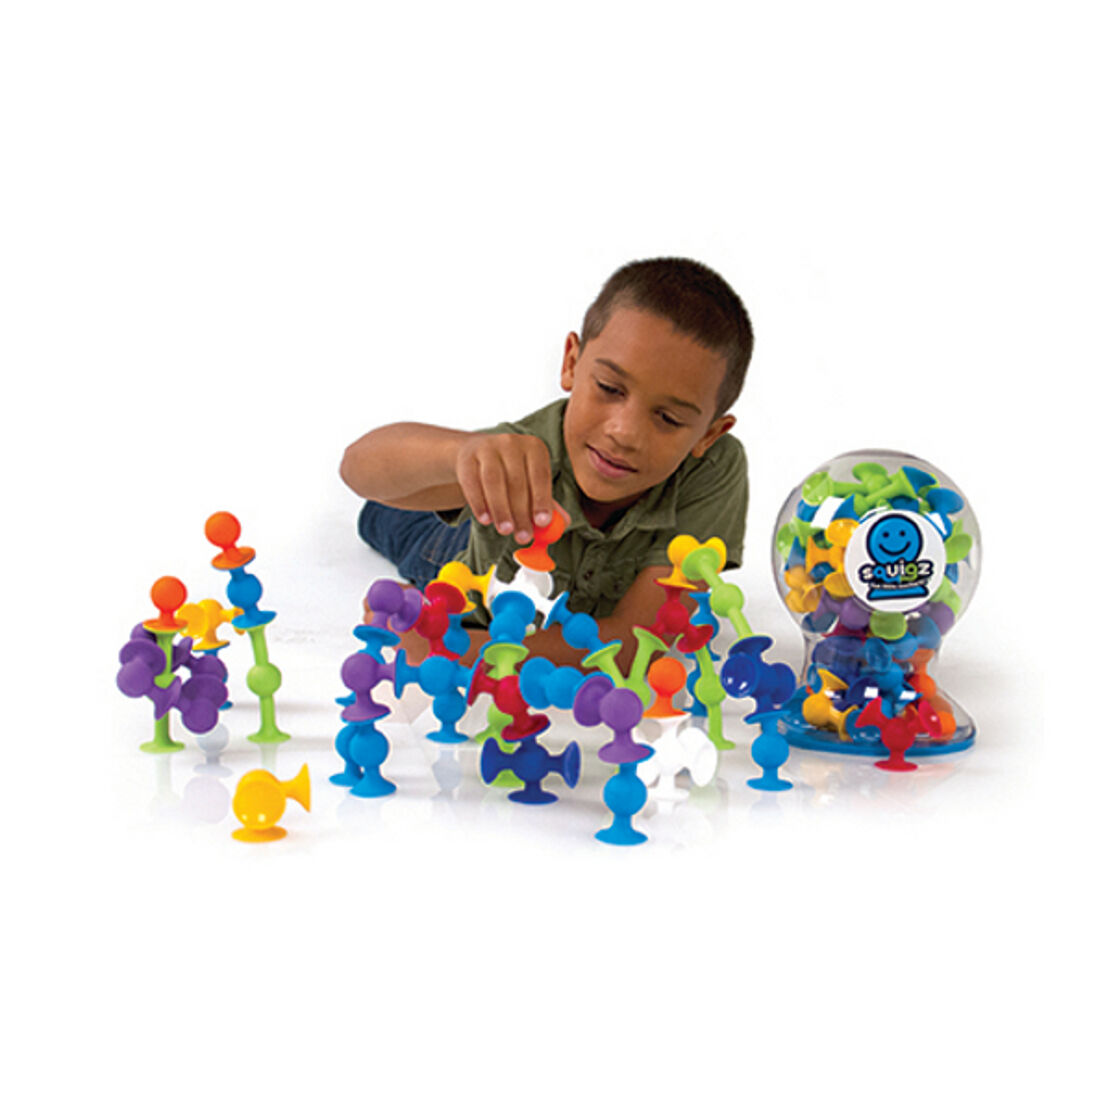 Squigz 50 Piece Set - Suction Construction For Kids Aged 3 to Adult